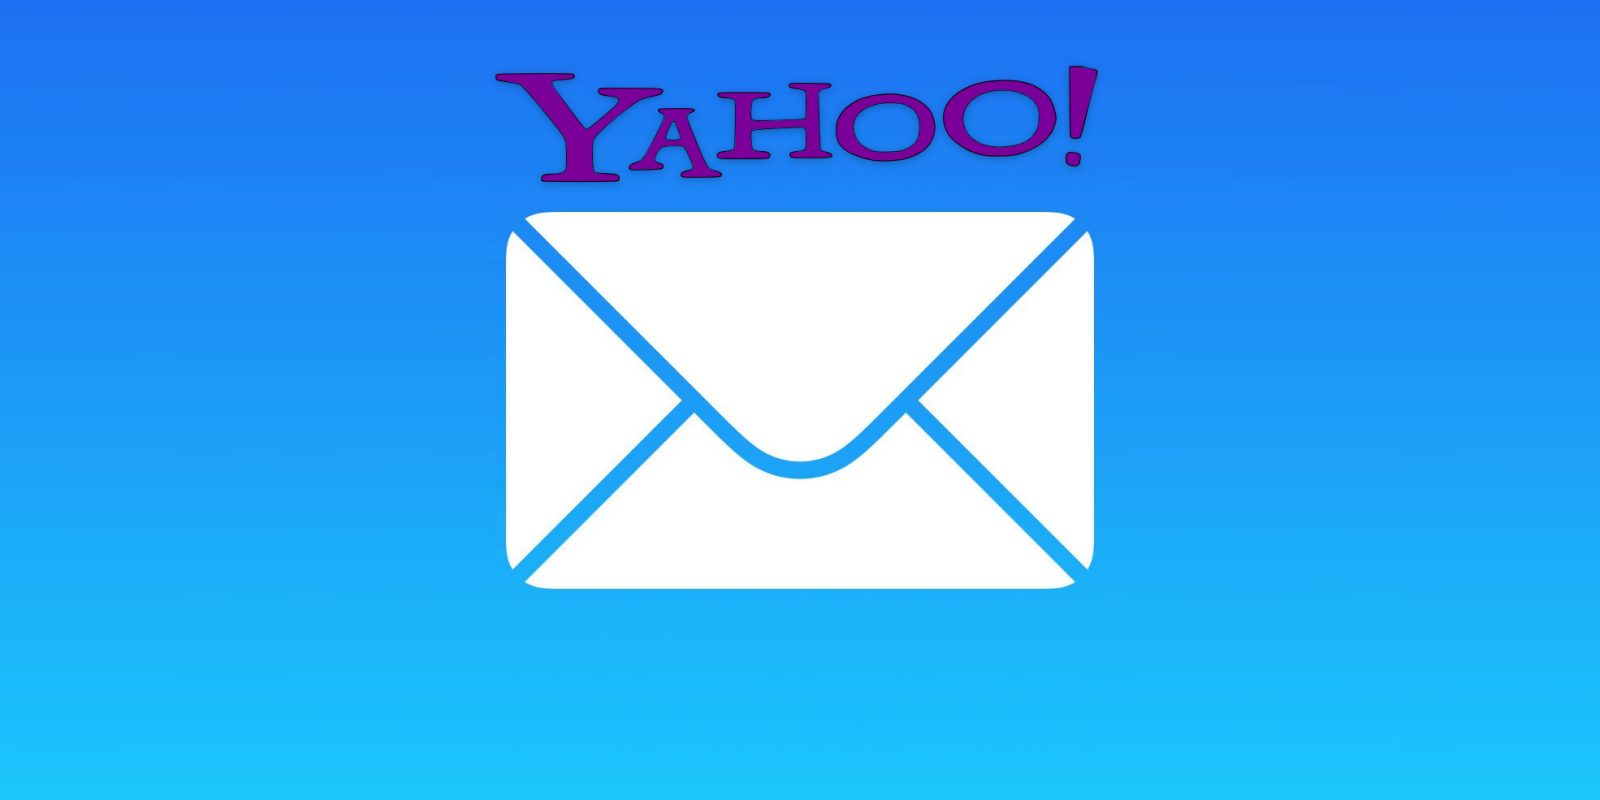 Yahoo Email Not Working With Iphone And Ipad Mail For Many Users Company Investigating A Fix